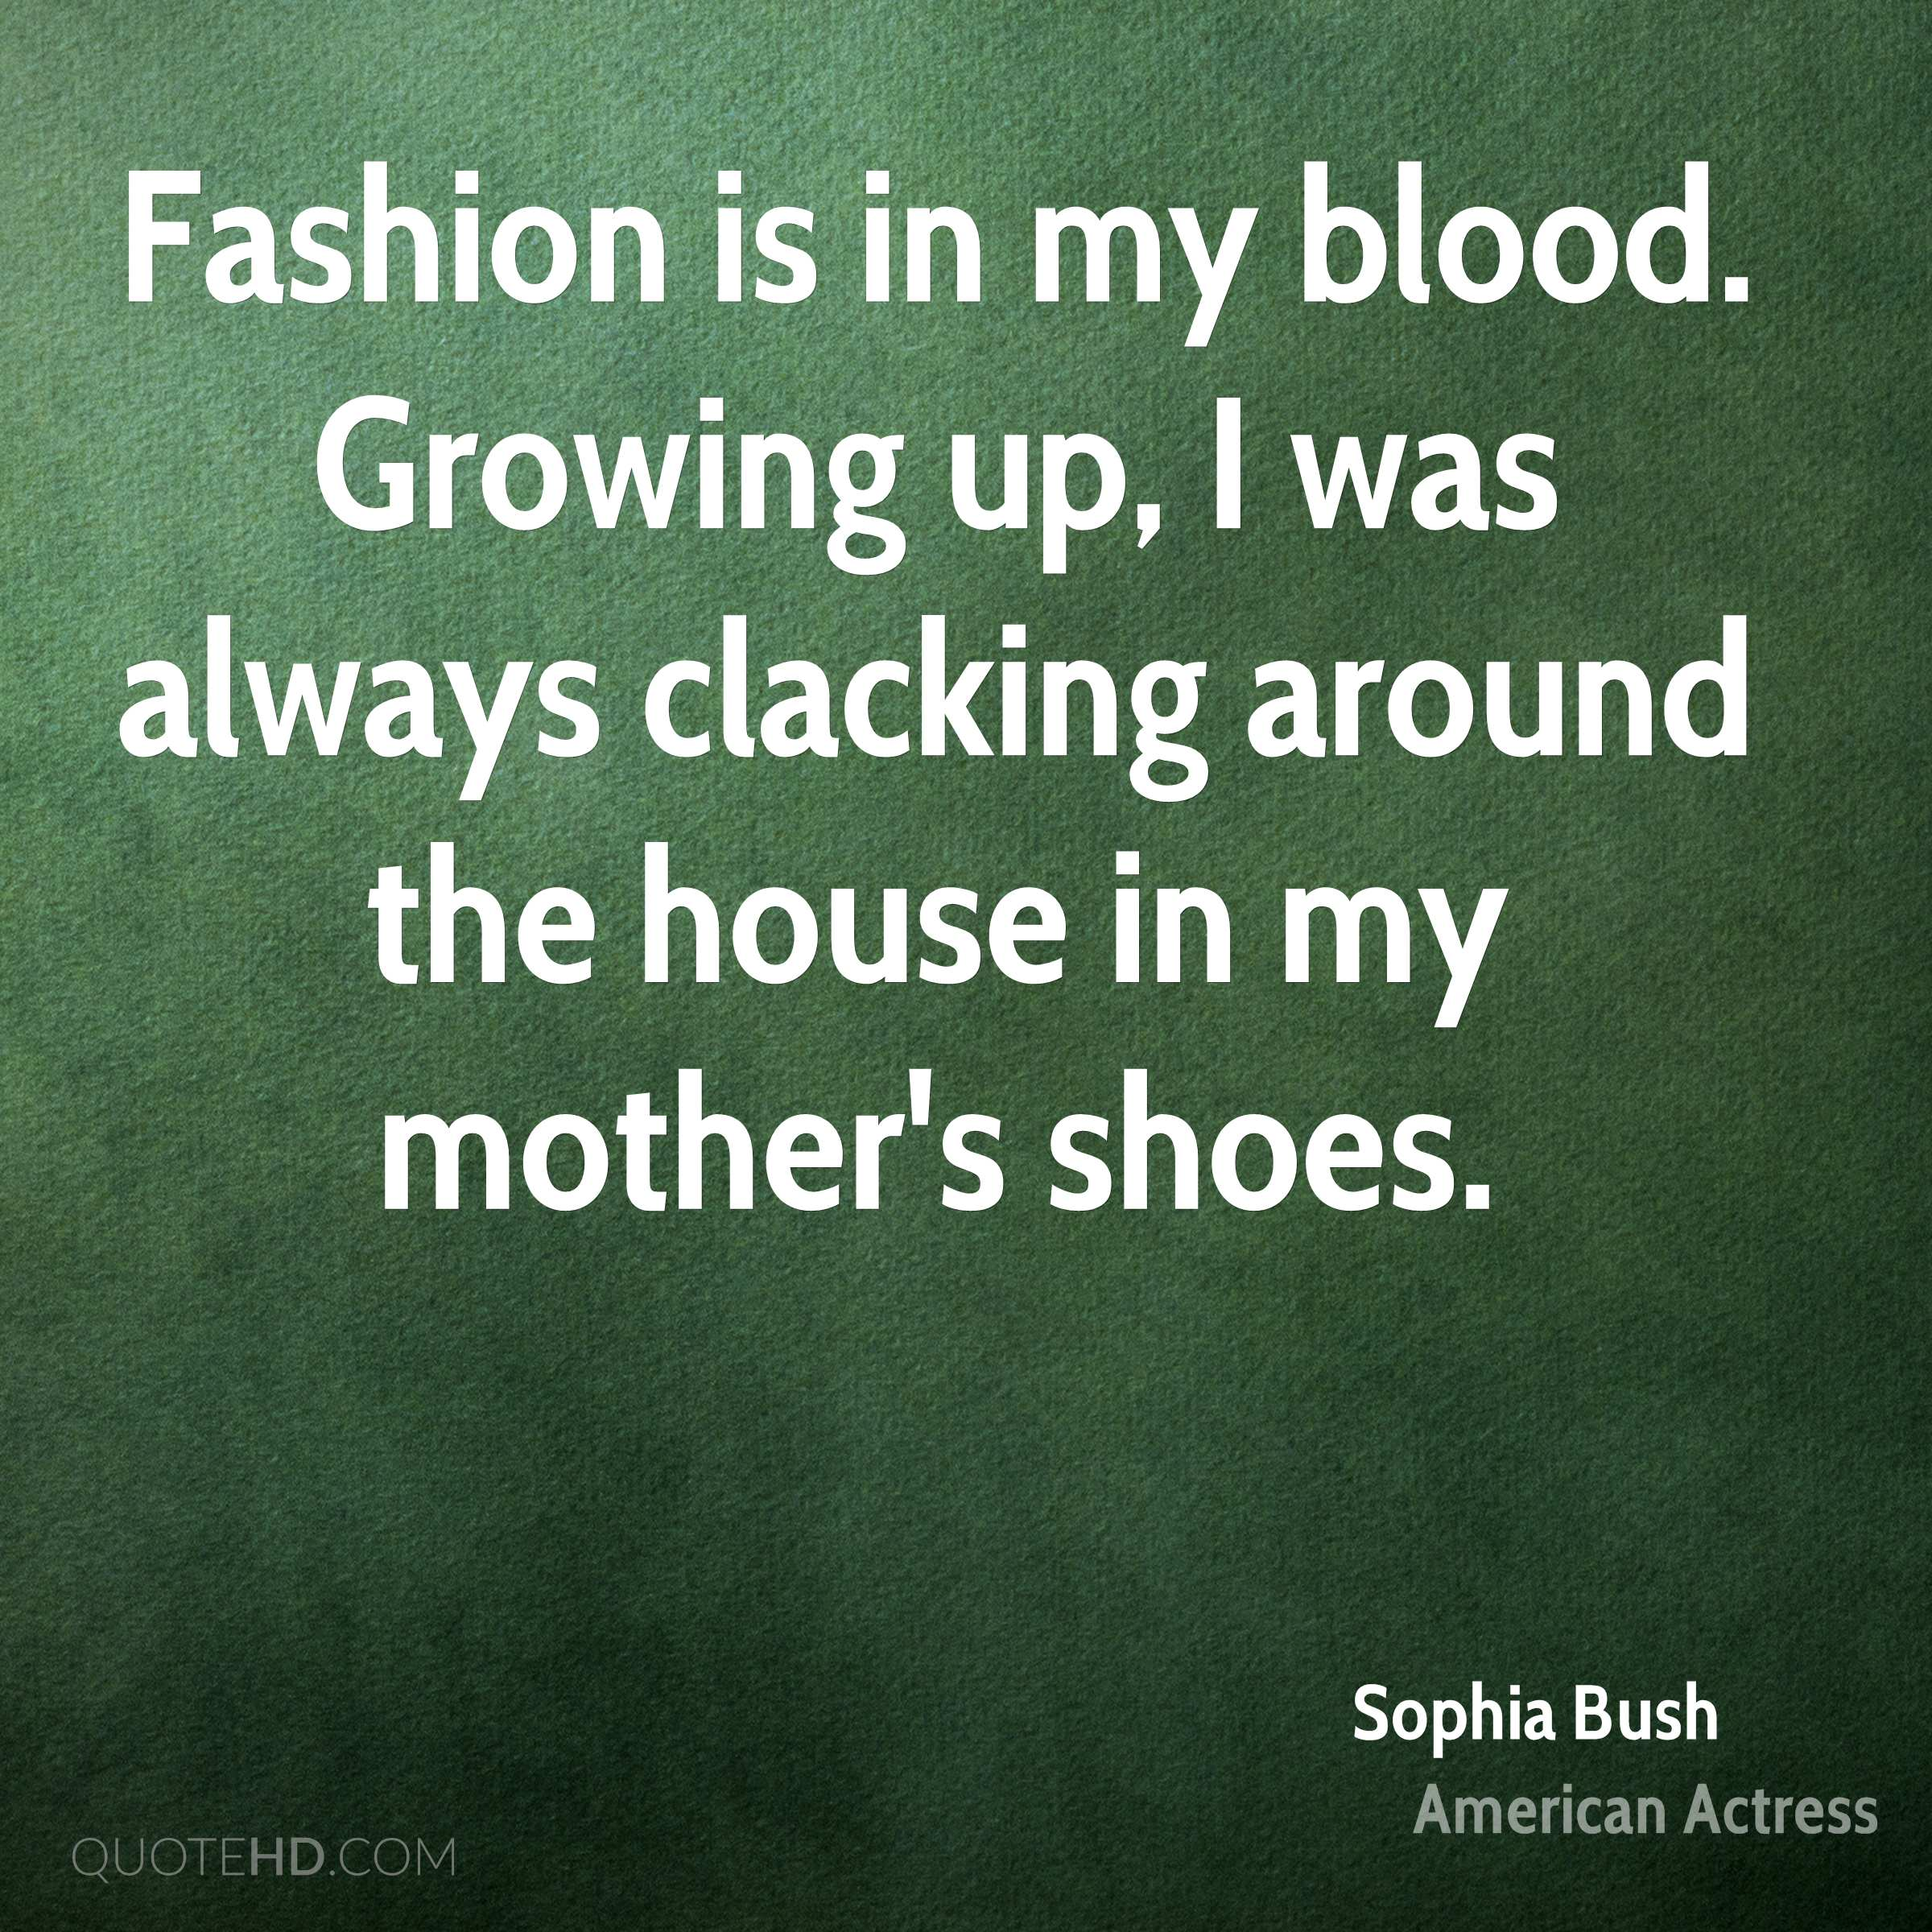 Fashion is in my blood. Growing up, I was always clacking around the house in my mother's shoes.